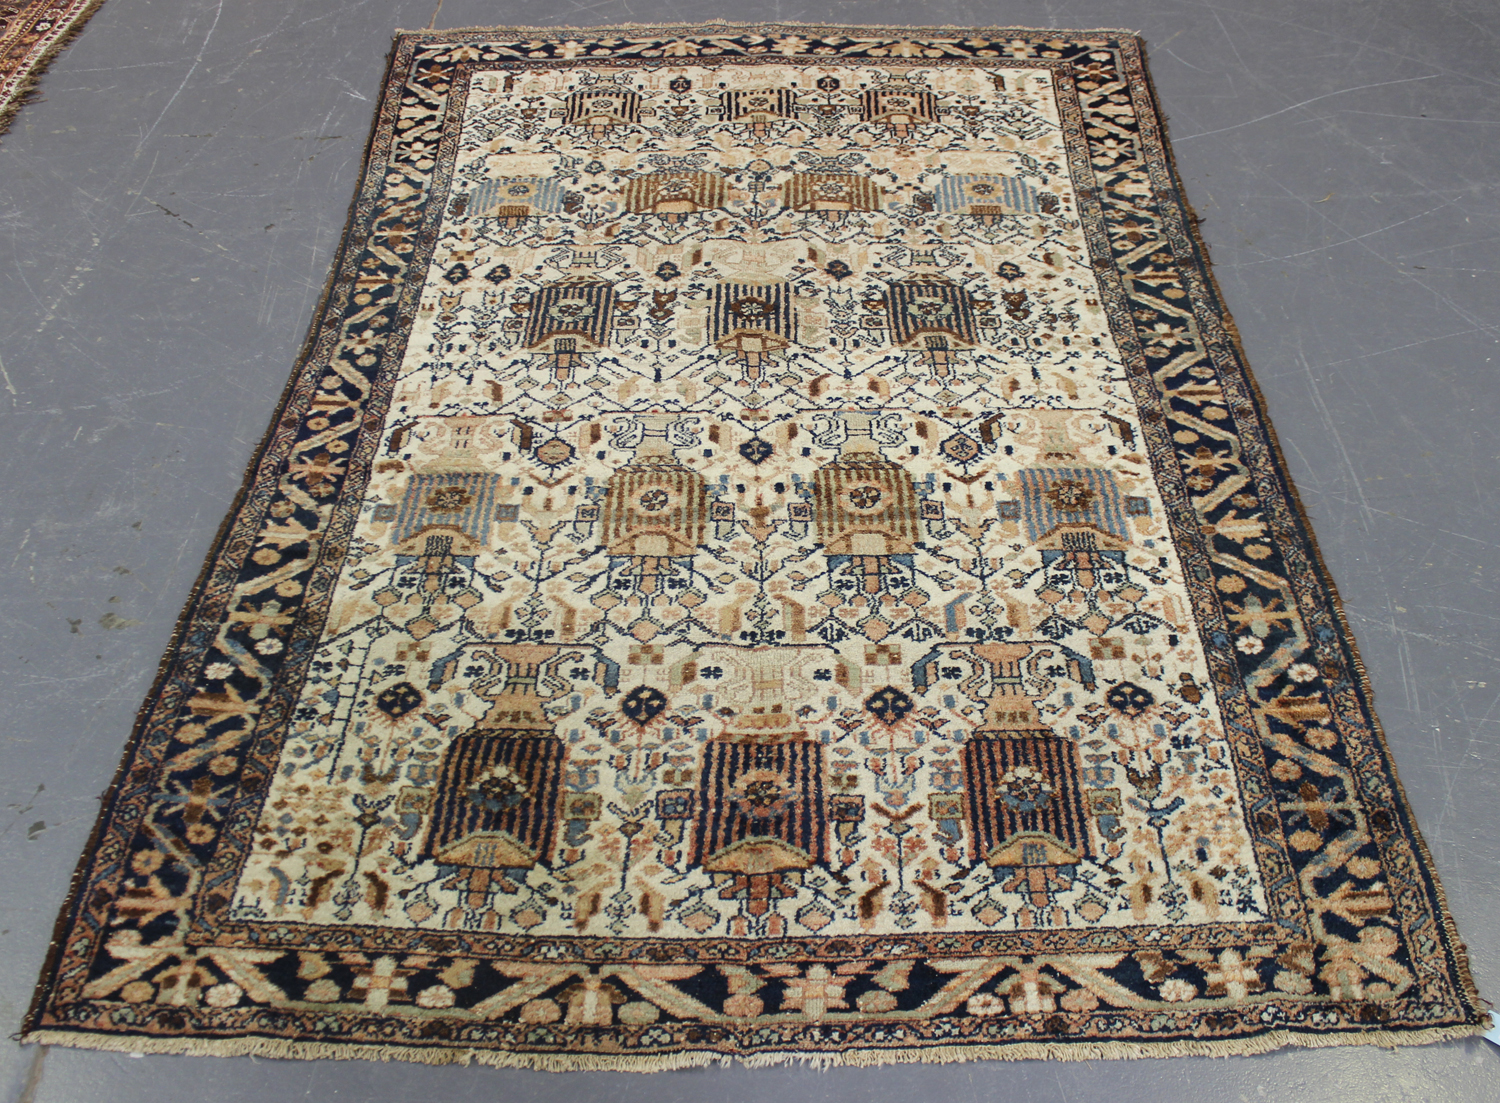 Lot 2915 - A Malayer rug, North-west Persia, mid-20th century, the ivory field with overall offset rows of